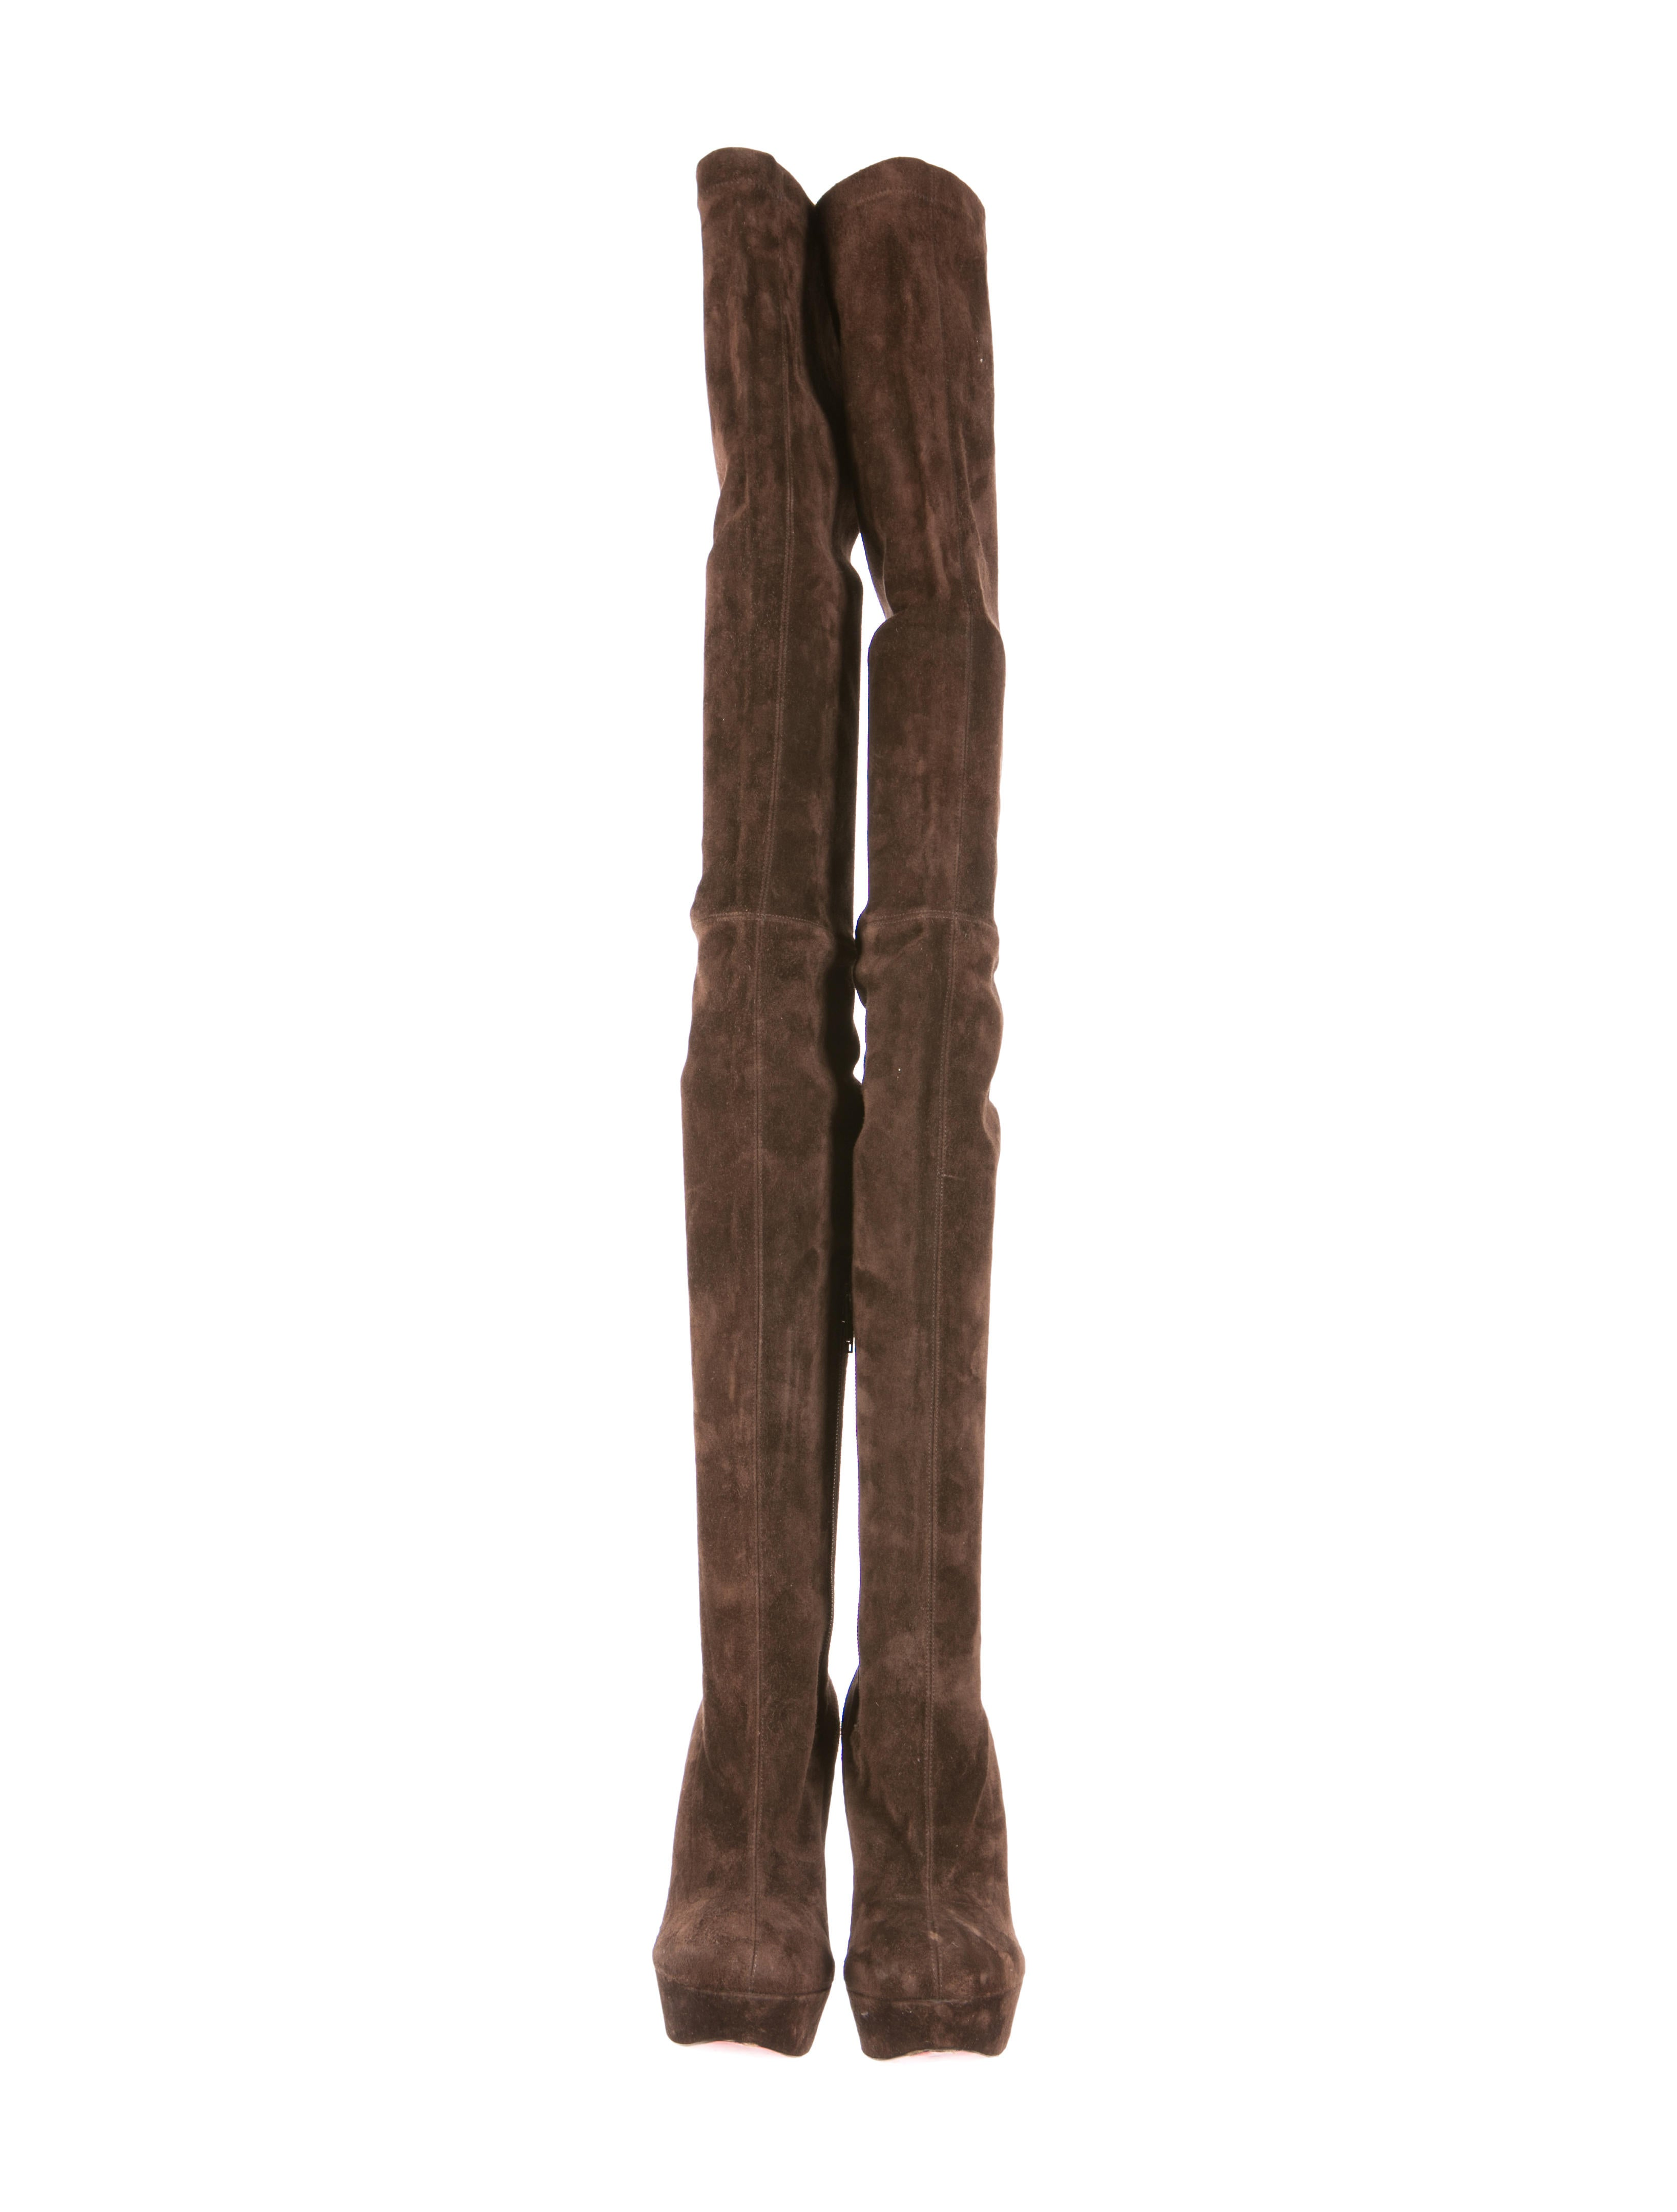 low priced 6eb7a bbcb9 christian louboutin bianca suede over-the-knee boots ...